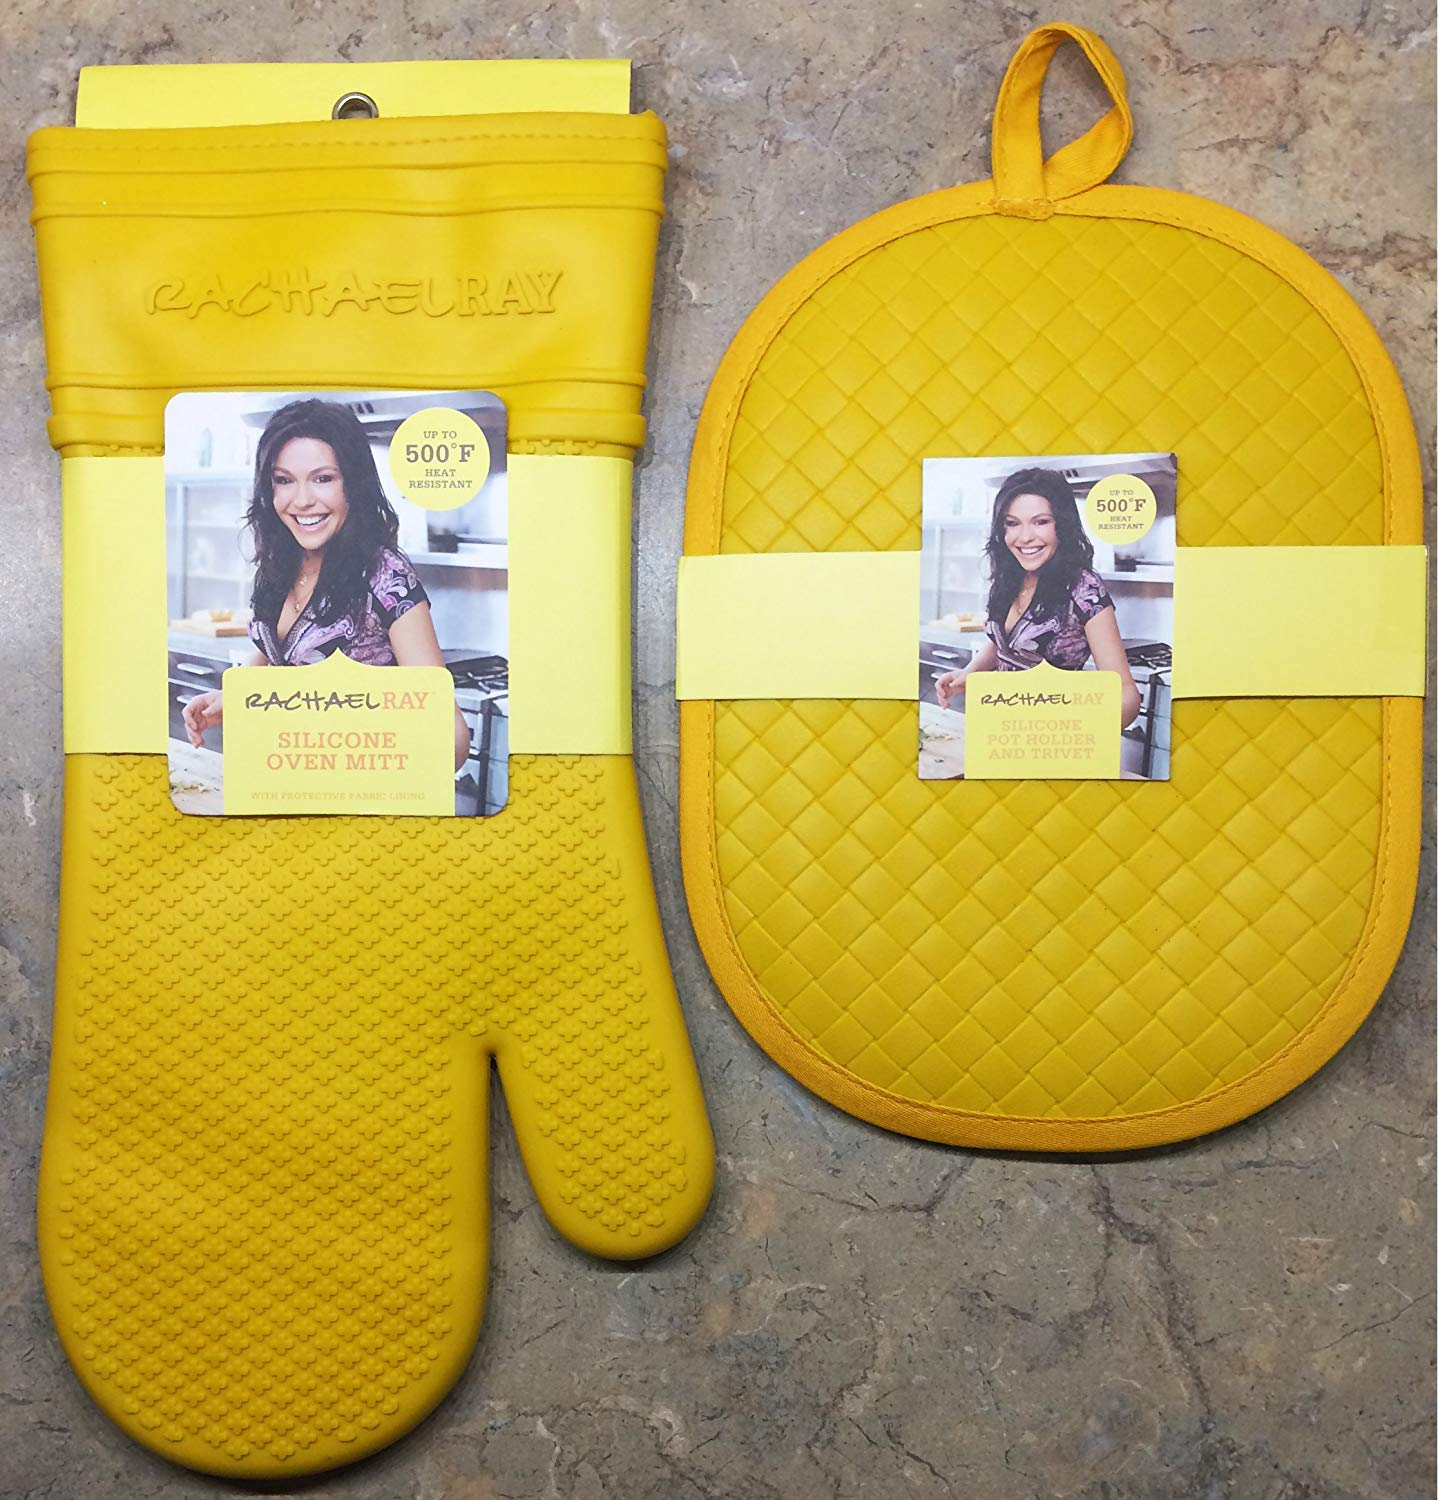 Rachael Ray Kitchen Essentials Set | Silicone Pot Holder And Trivet + Silicone Oven Mitt With Protective Fabric Lining | Up To 500 Degrees F Heat Resistant | Non Slip Grip (Yellow)